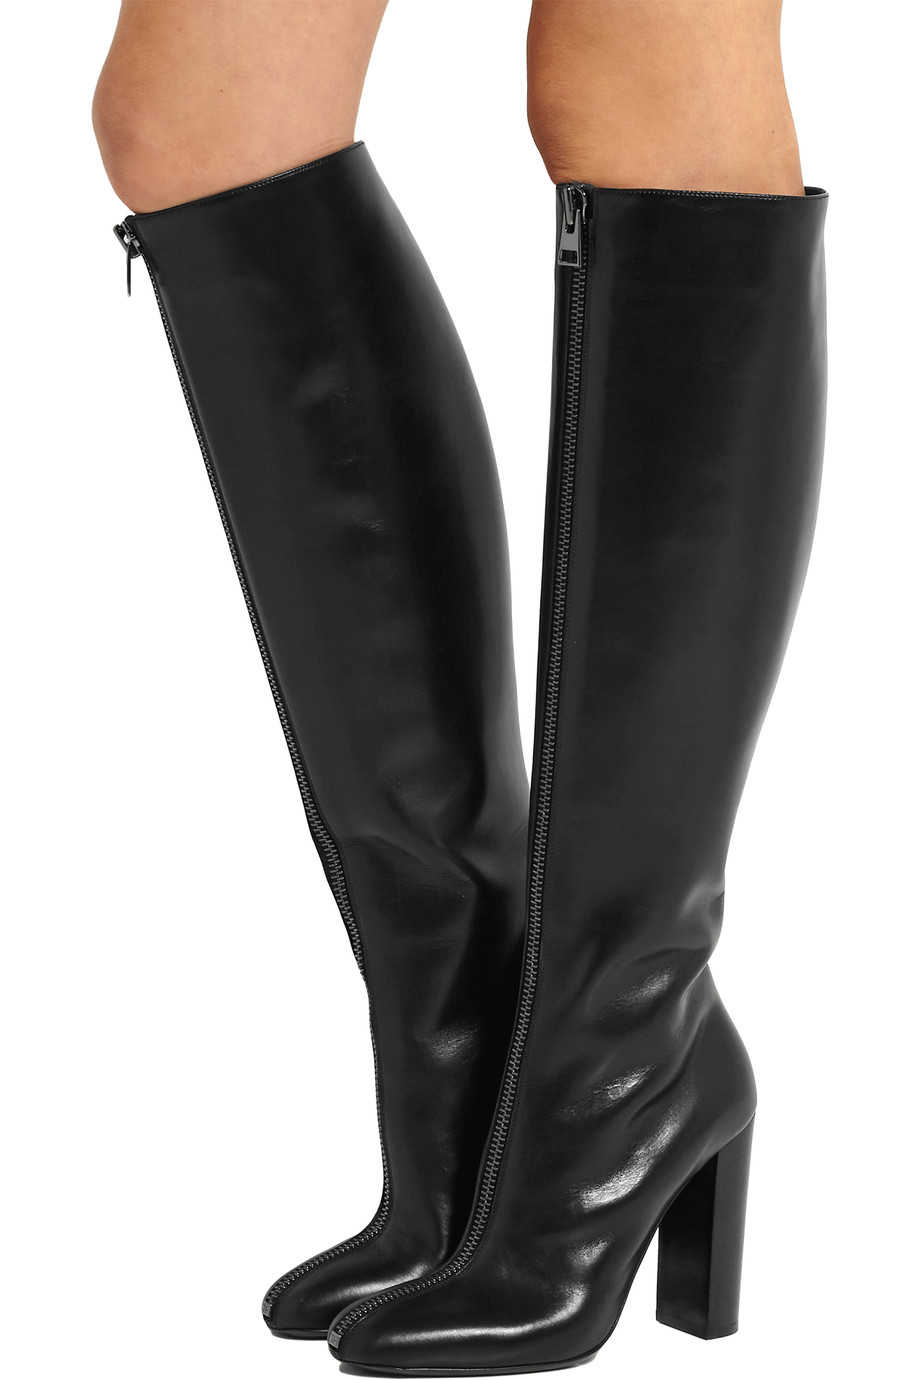 15d6cd047d4 2018 Women Black Knee High Boots Round Toe Chunky Heel Front Zipper High  Heel Stylish Long Boots Ladies Winter Shoes Plus Size